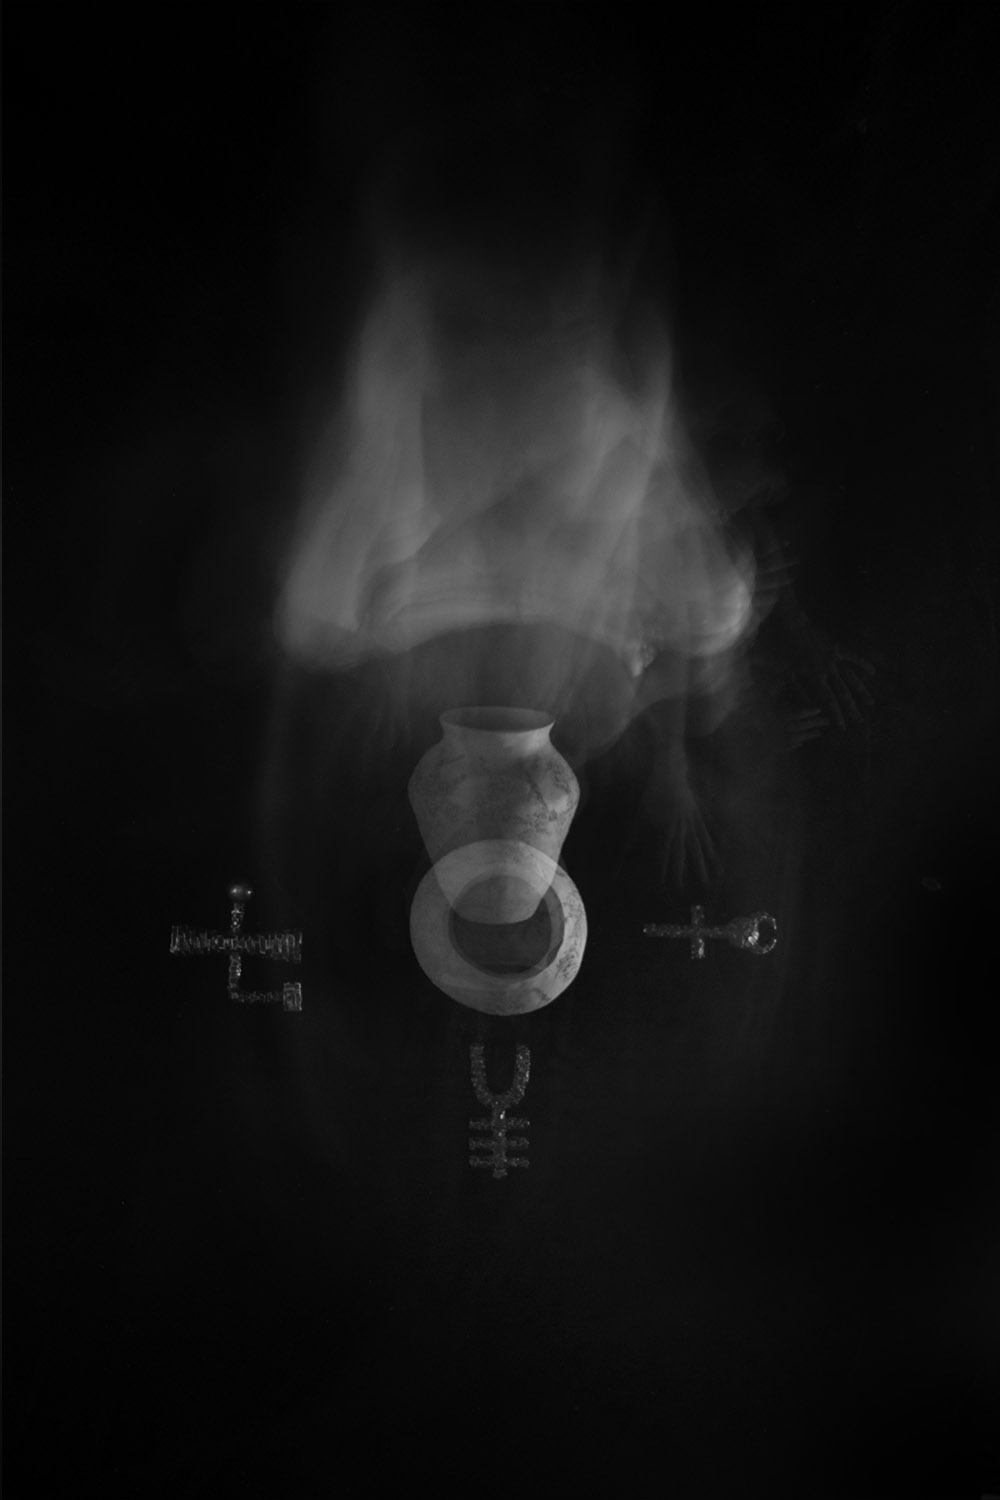 Carla Janse van Rensburg Untitled (10 minute exposure of Recoding Vase Consecration Ritual) 2018 digital photograph archival ink on Hahnemuhle, 1of20 35.5 x 24.2 cm